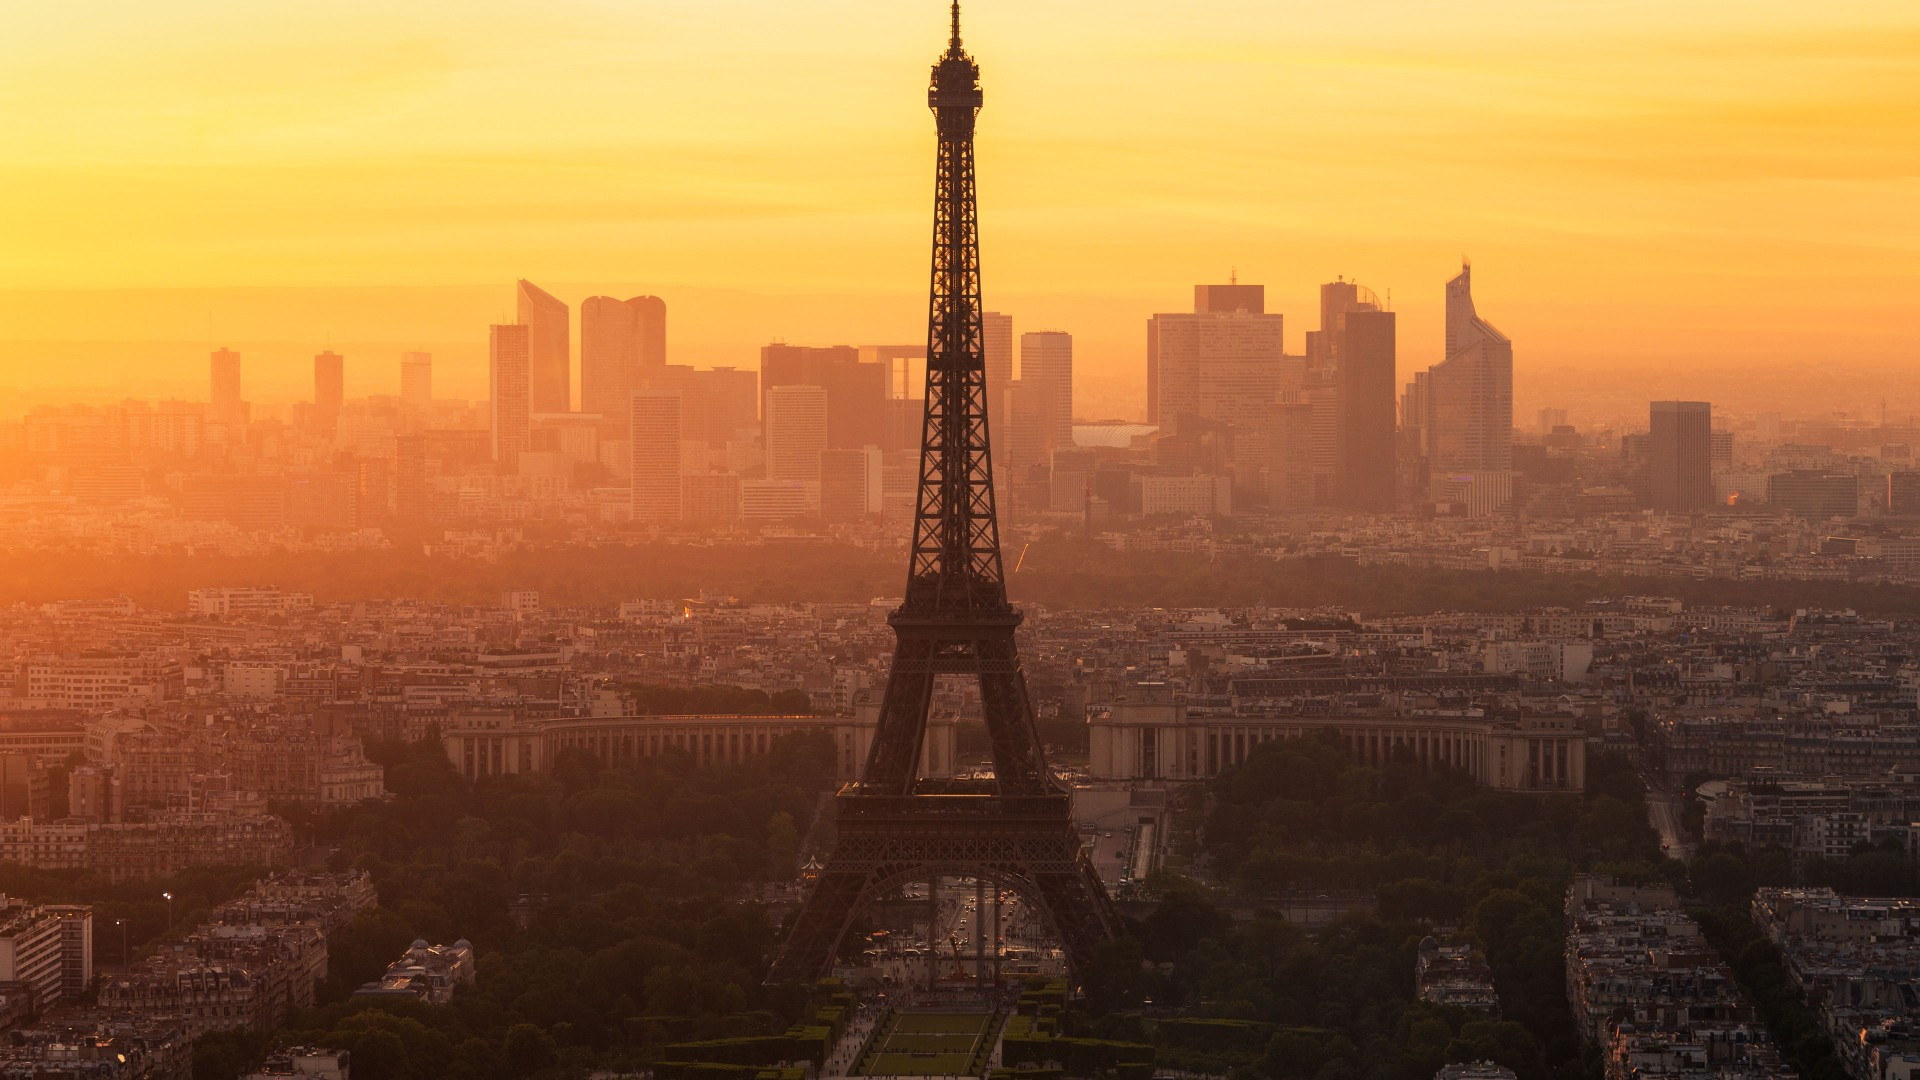 Paris morning 1920x1080